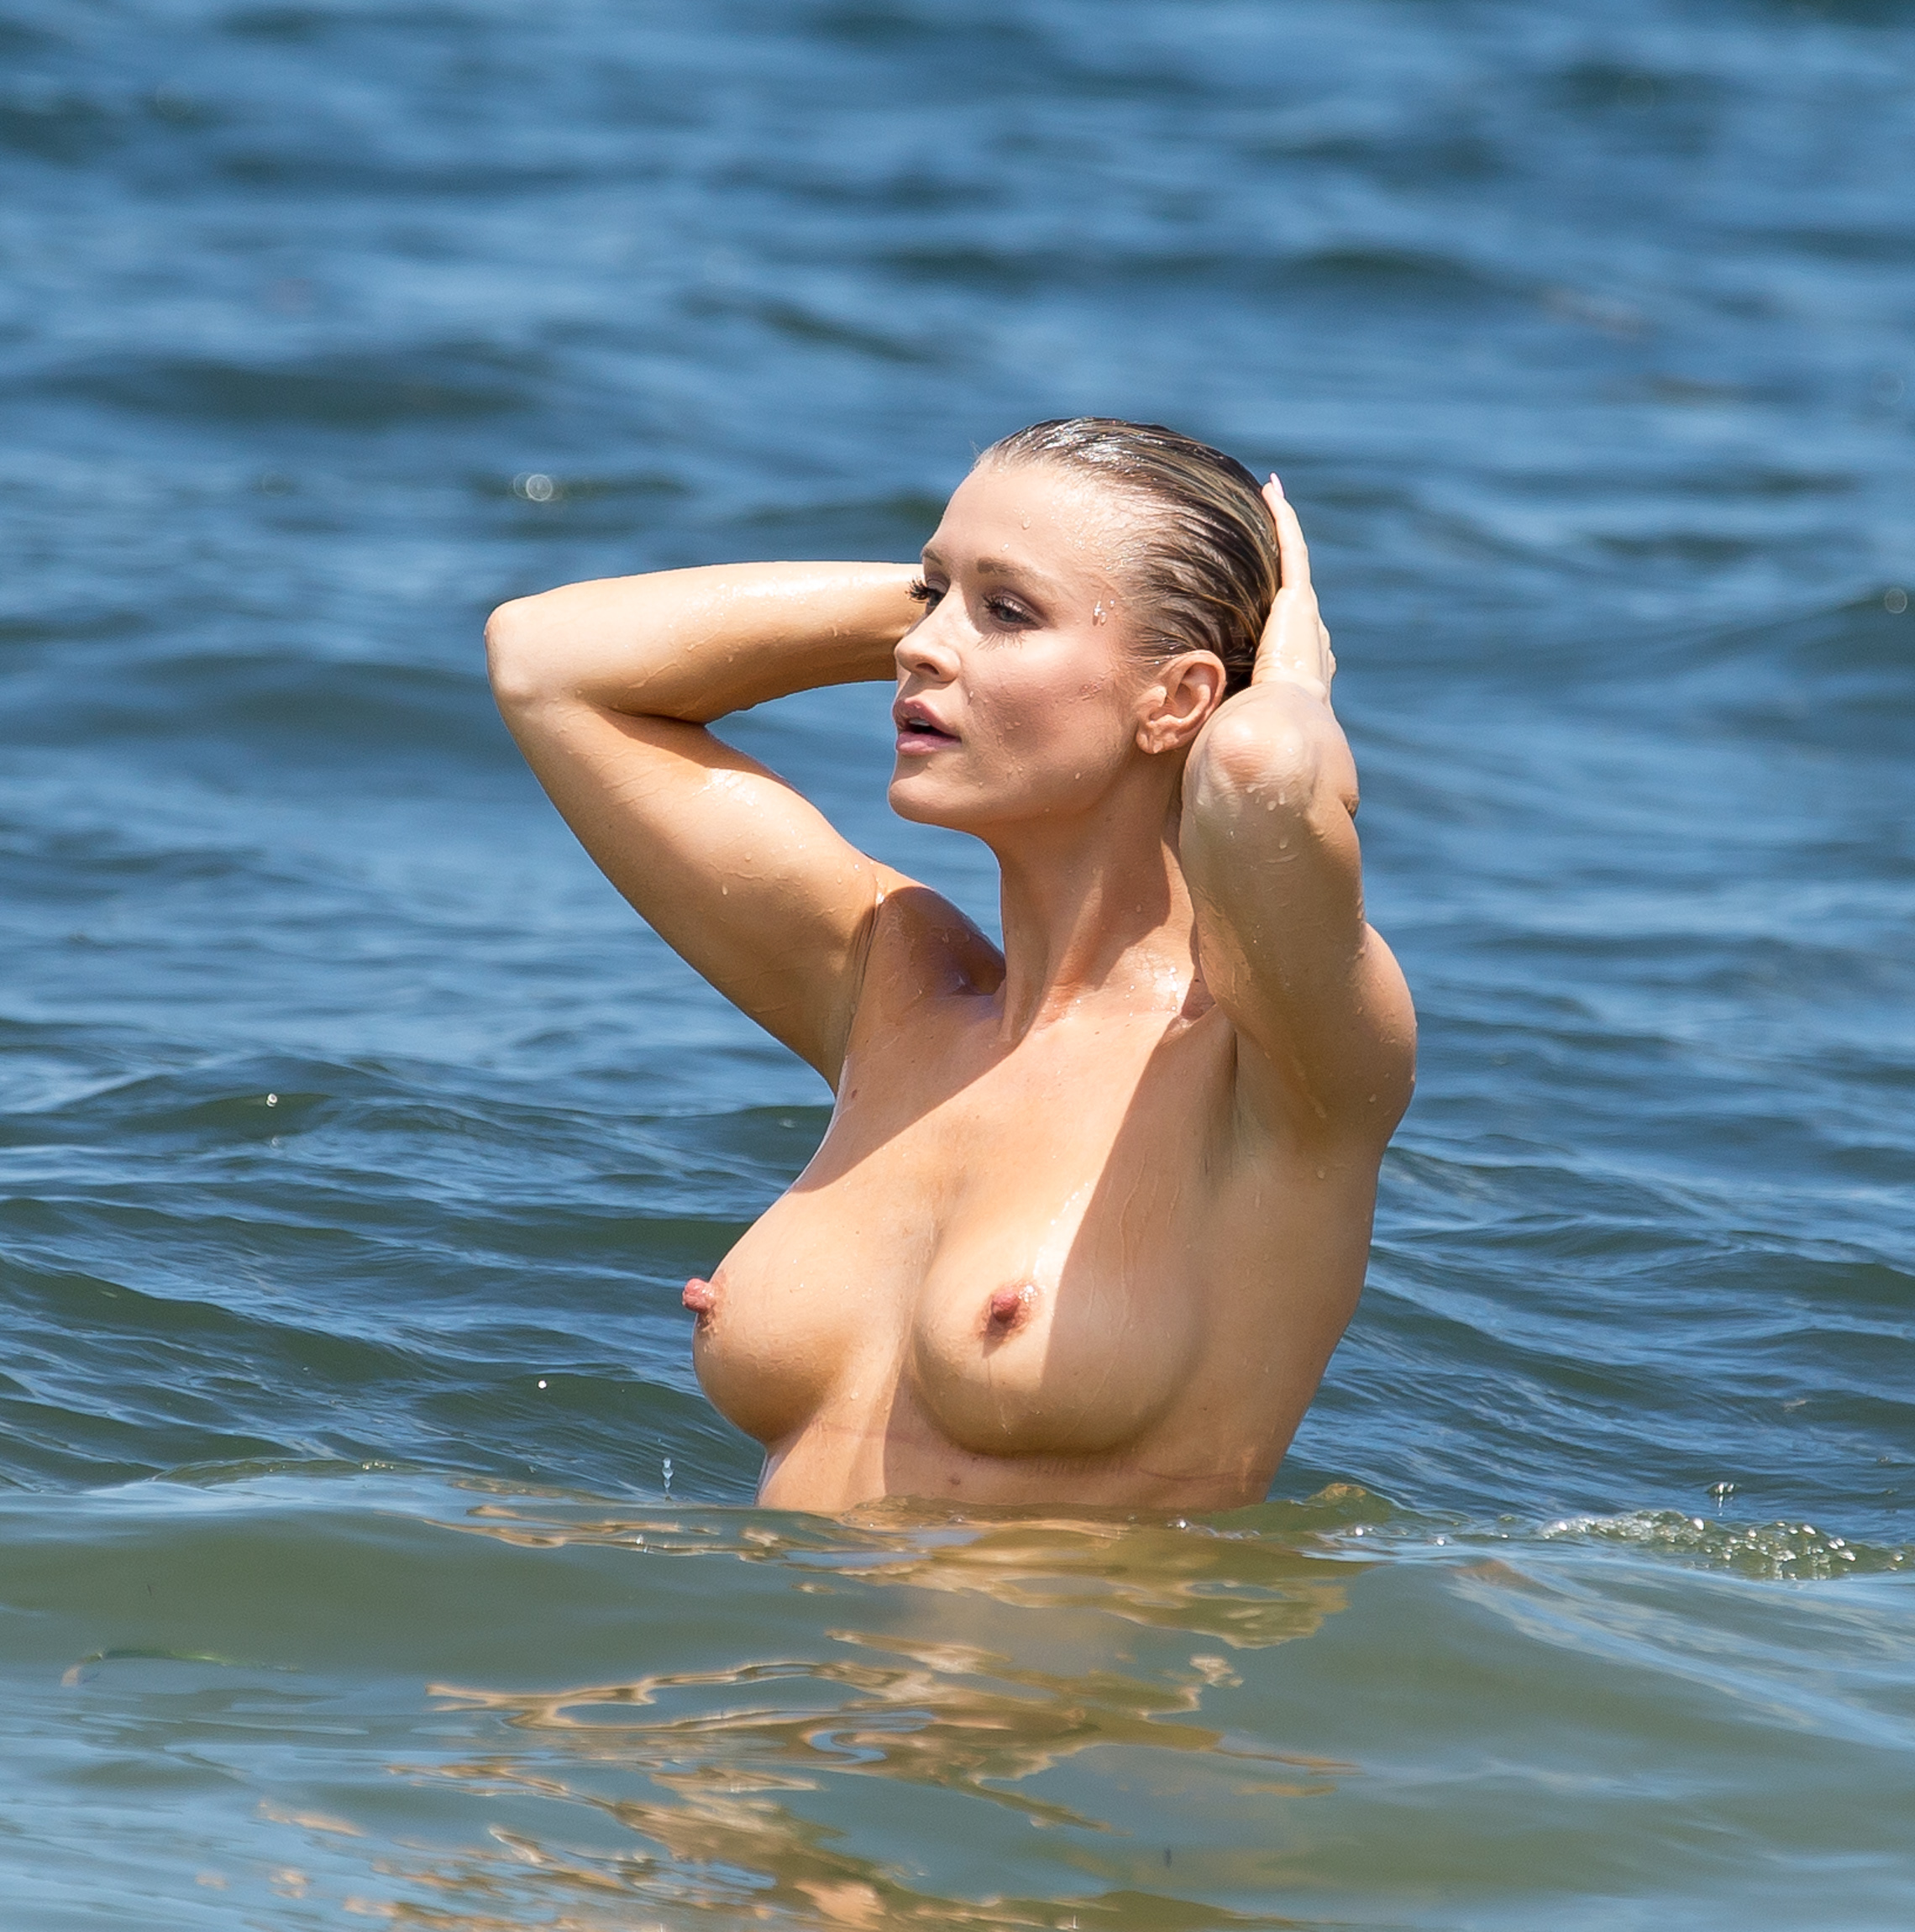 Joanna krupa naked to her pussy agree